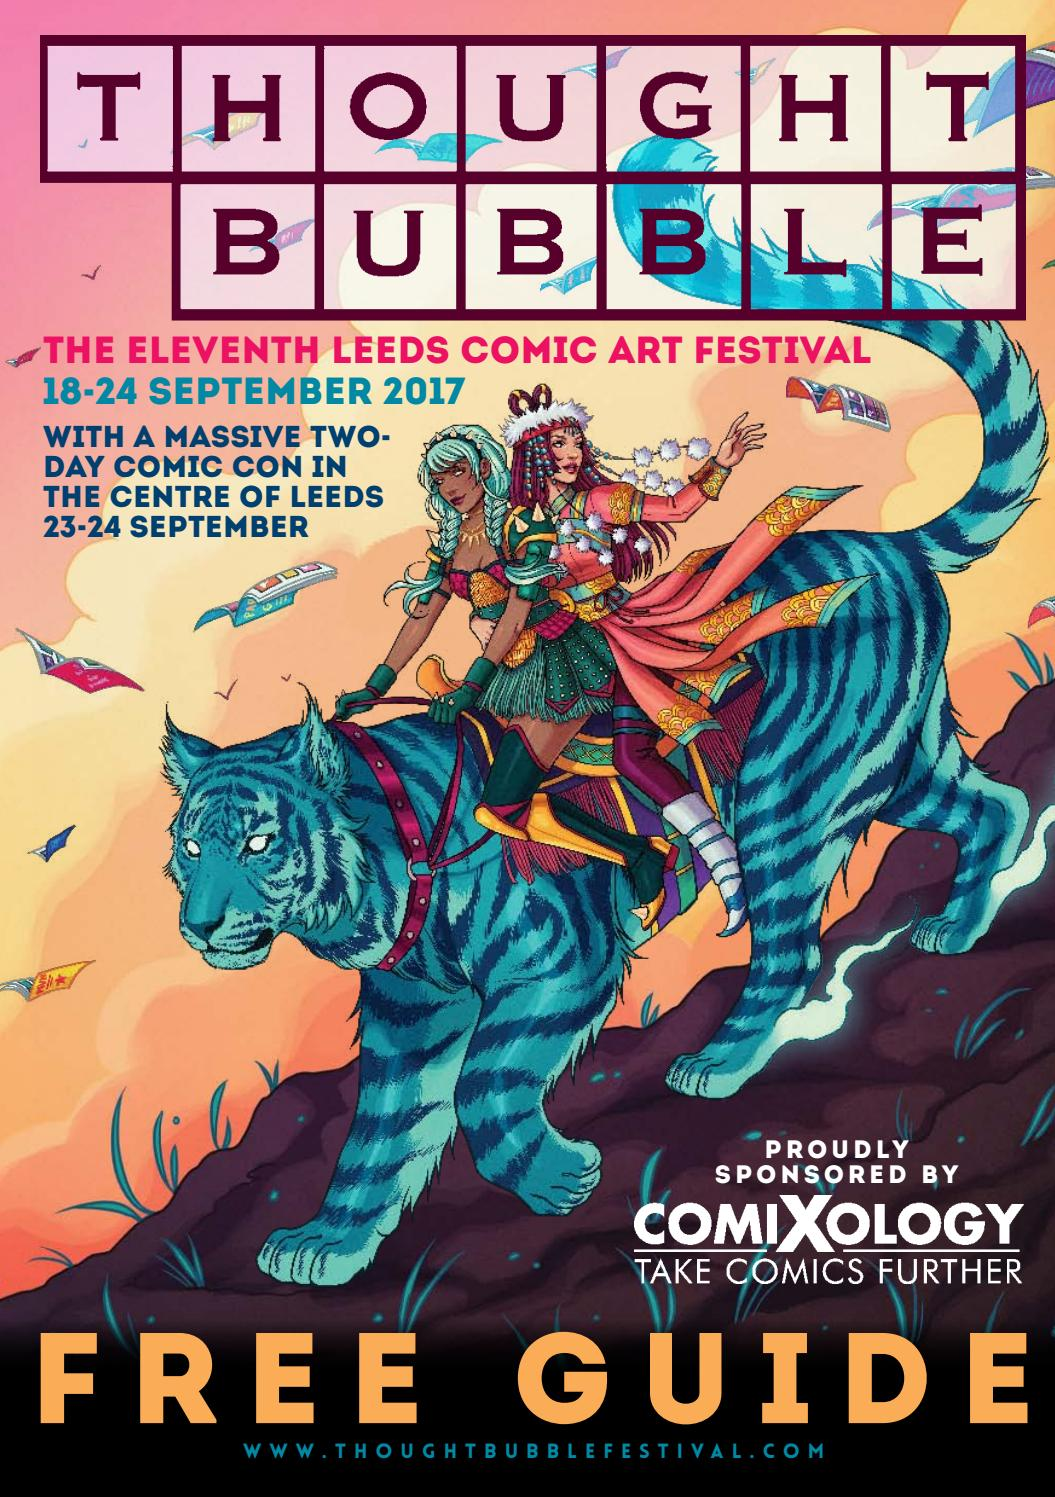 Thought bubble festival 2017 guide by thought bubble comic art thought bubble festival 2017 guide by thought bubble comic art festival issuu gamestrikefo Image collections